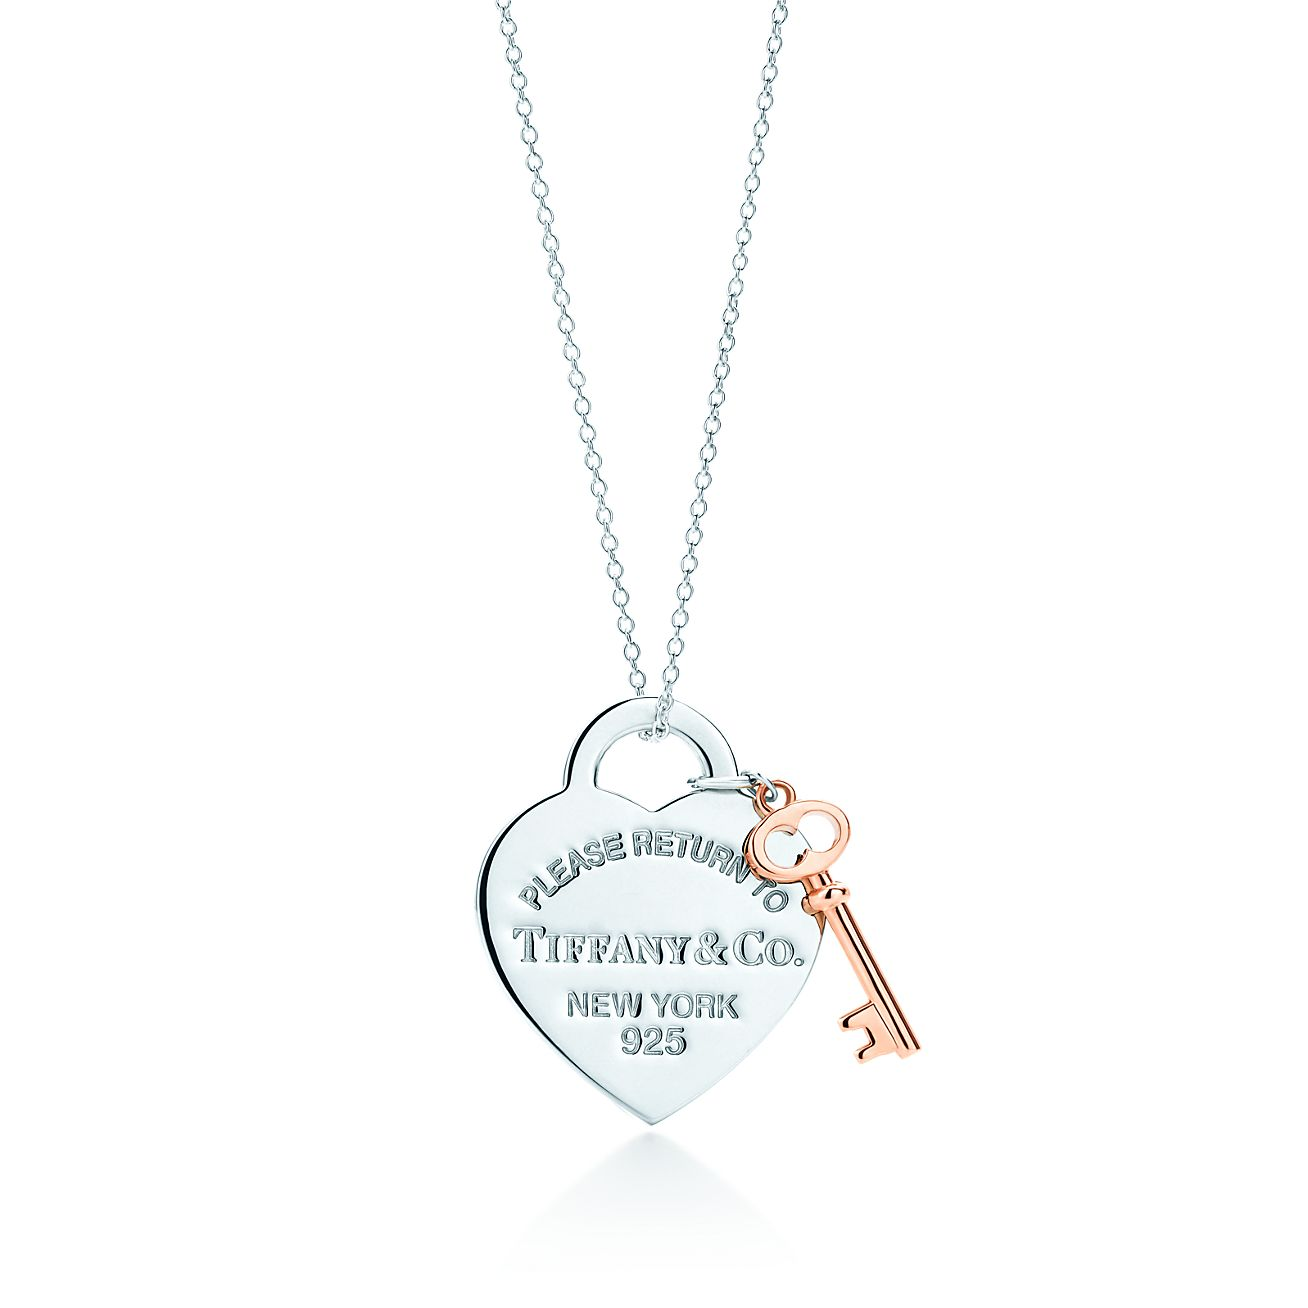 Jewelry Necklaces Pendants Return To Tiffany Heart Key Pendant 30971531 Return To Tiffany Cufflinks